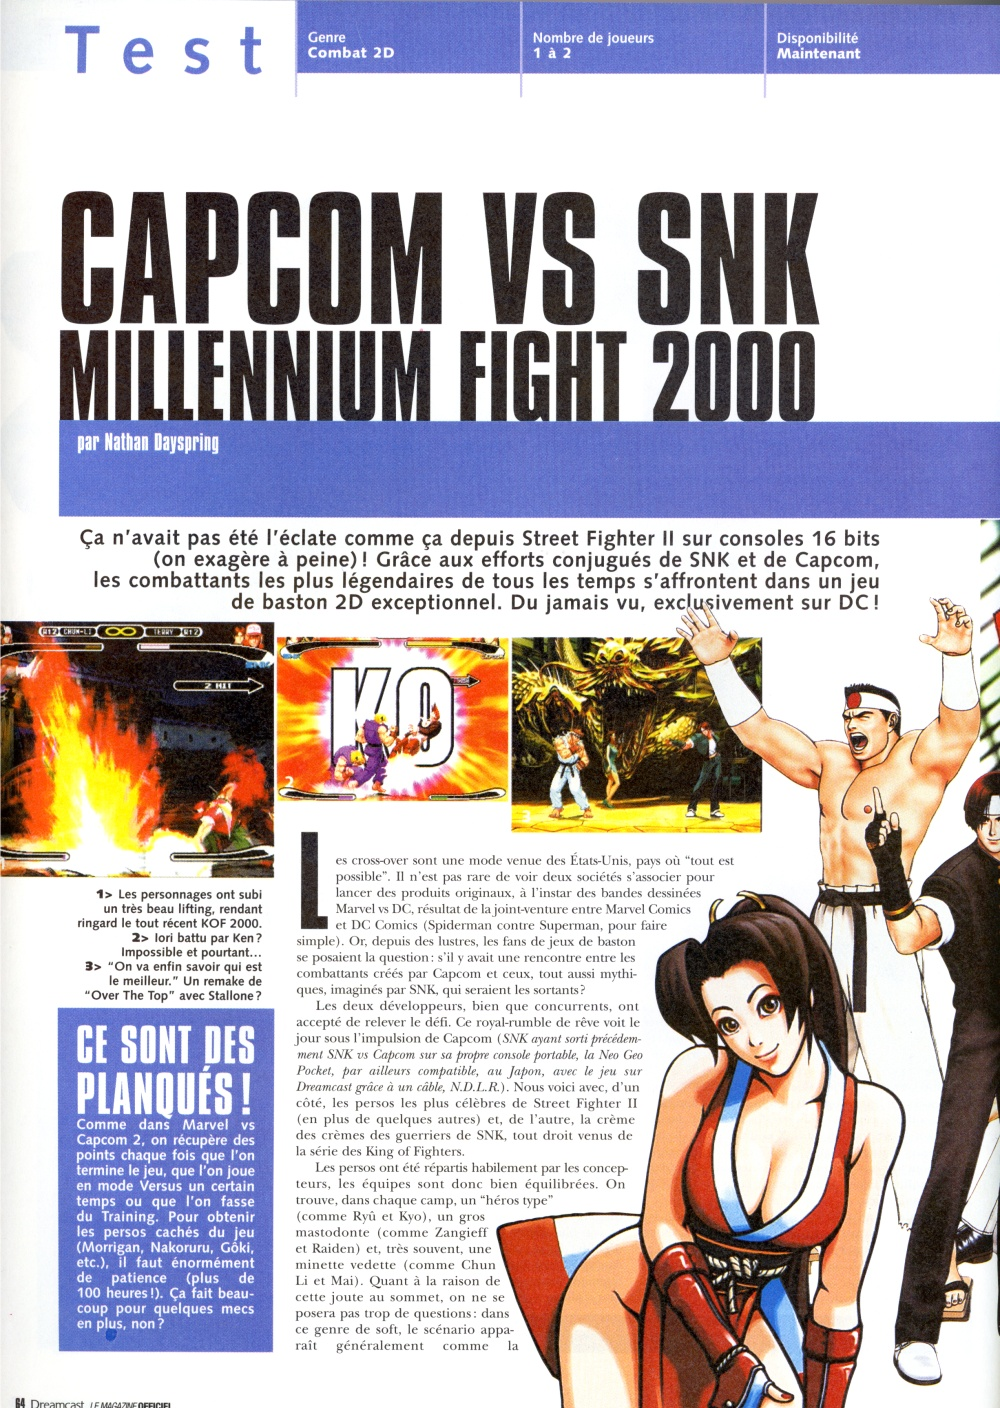 Capcom vs SNK p1